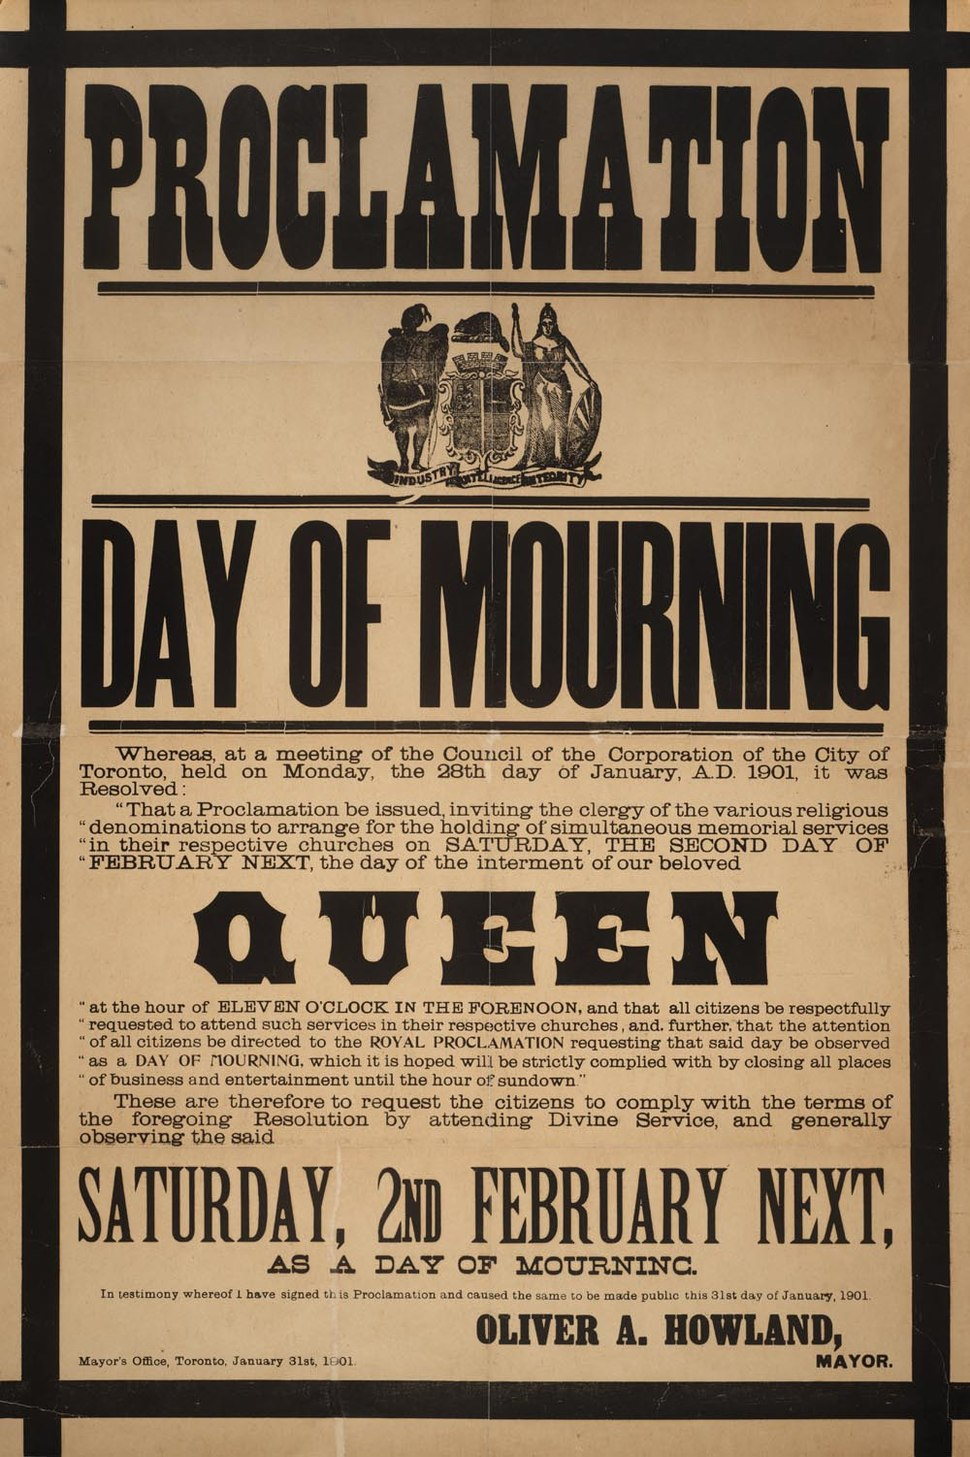 Proclamation - Day of mourning in Toronto for Queen Victoria February 2, 1901